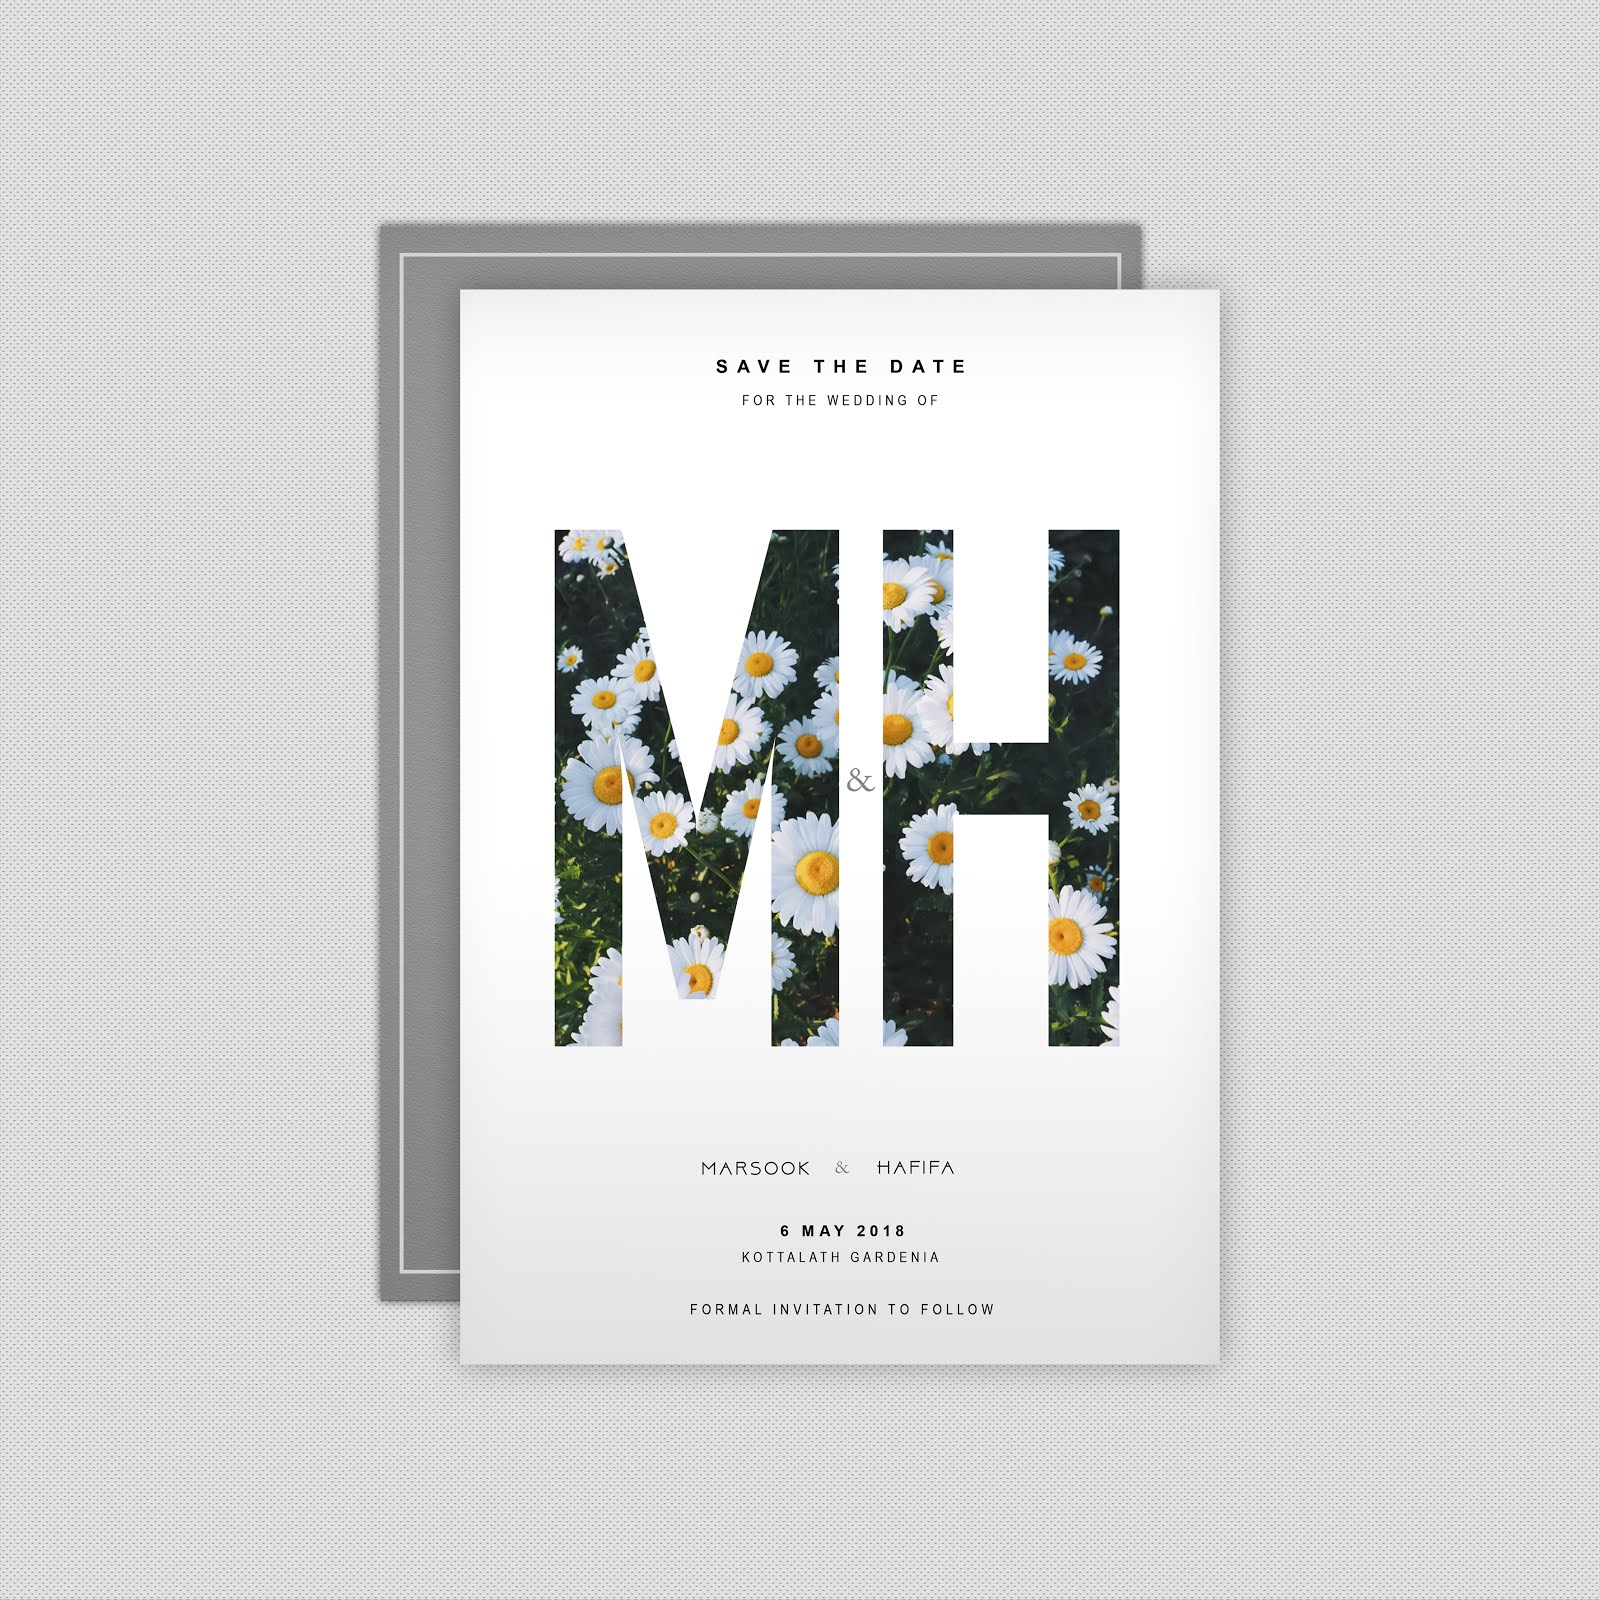 save the date wedding card design